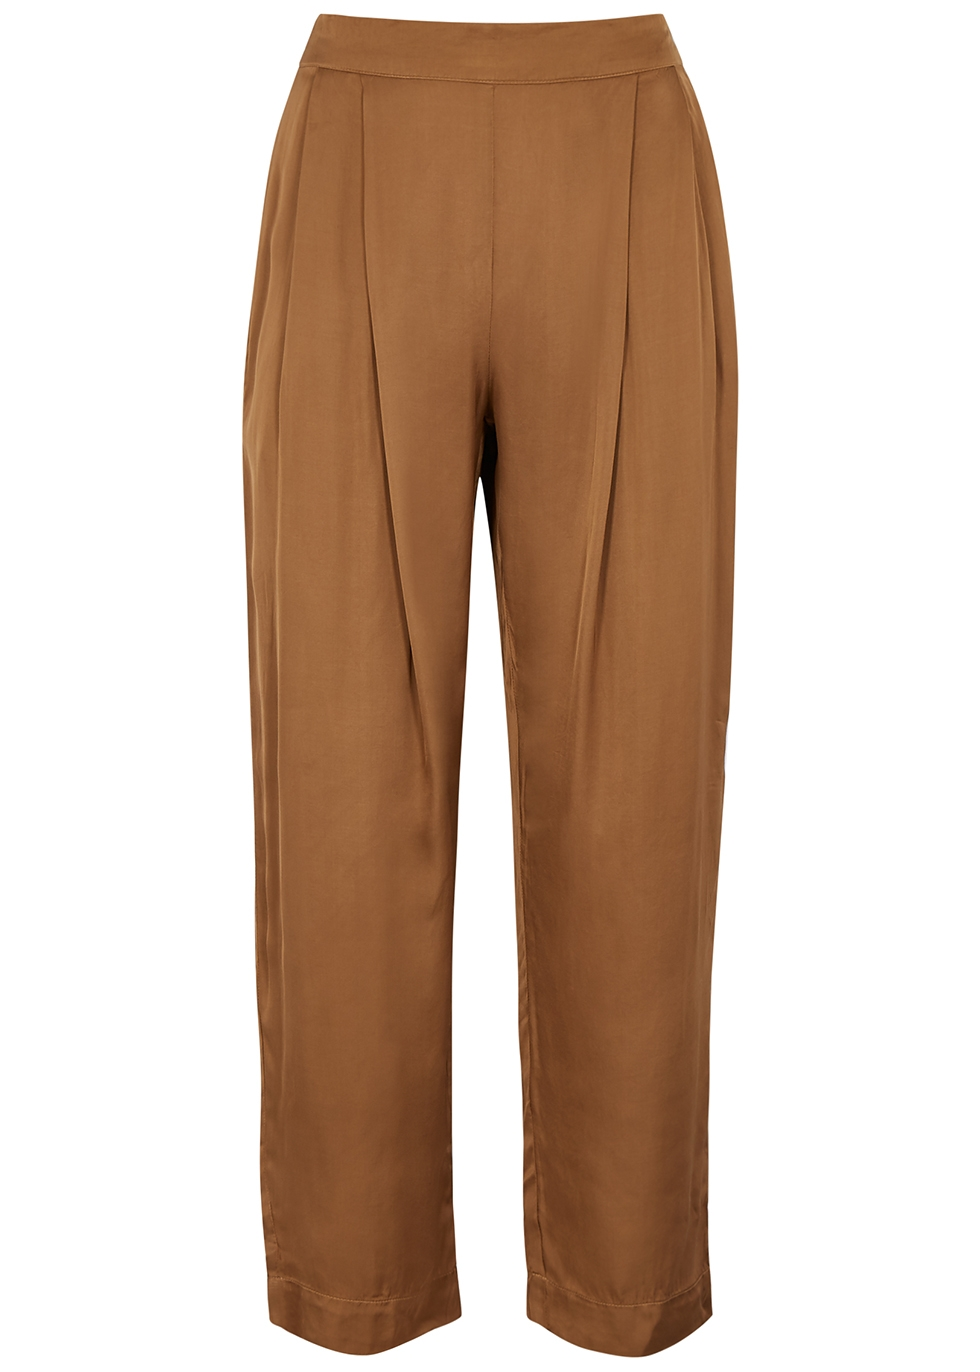 Hillary brown satin trousers